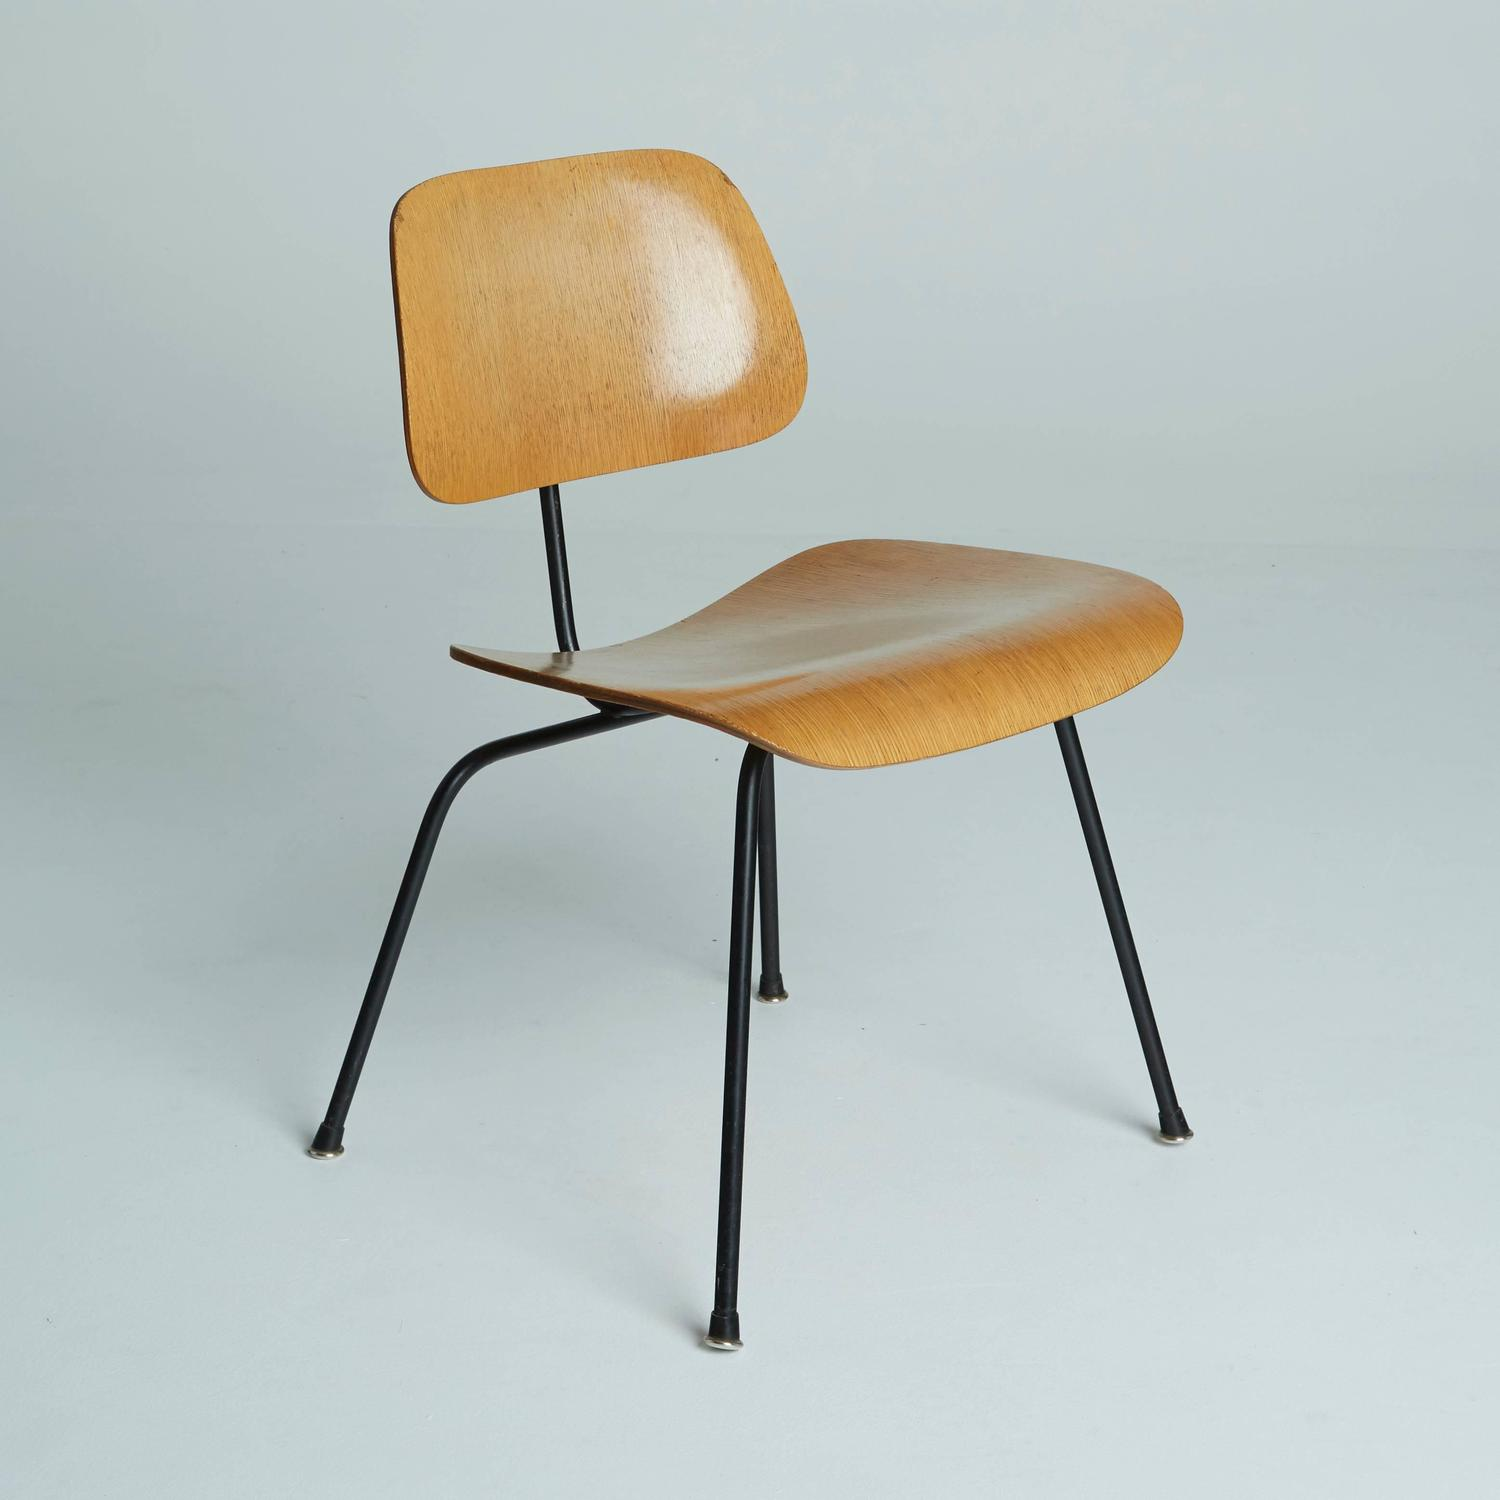 dcm chairs by charles eames for herman miller circa 1950 at 1stdibs